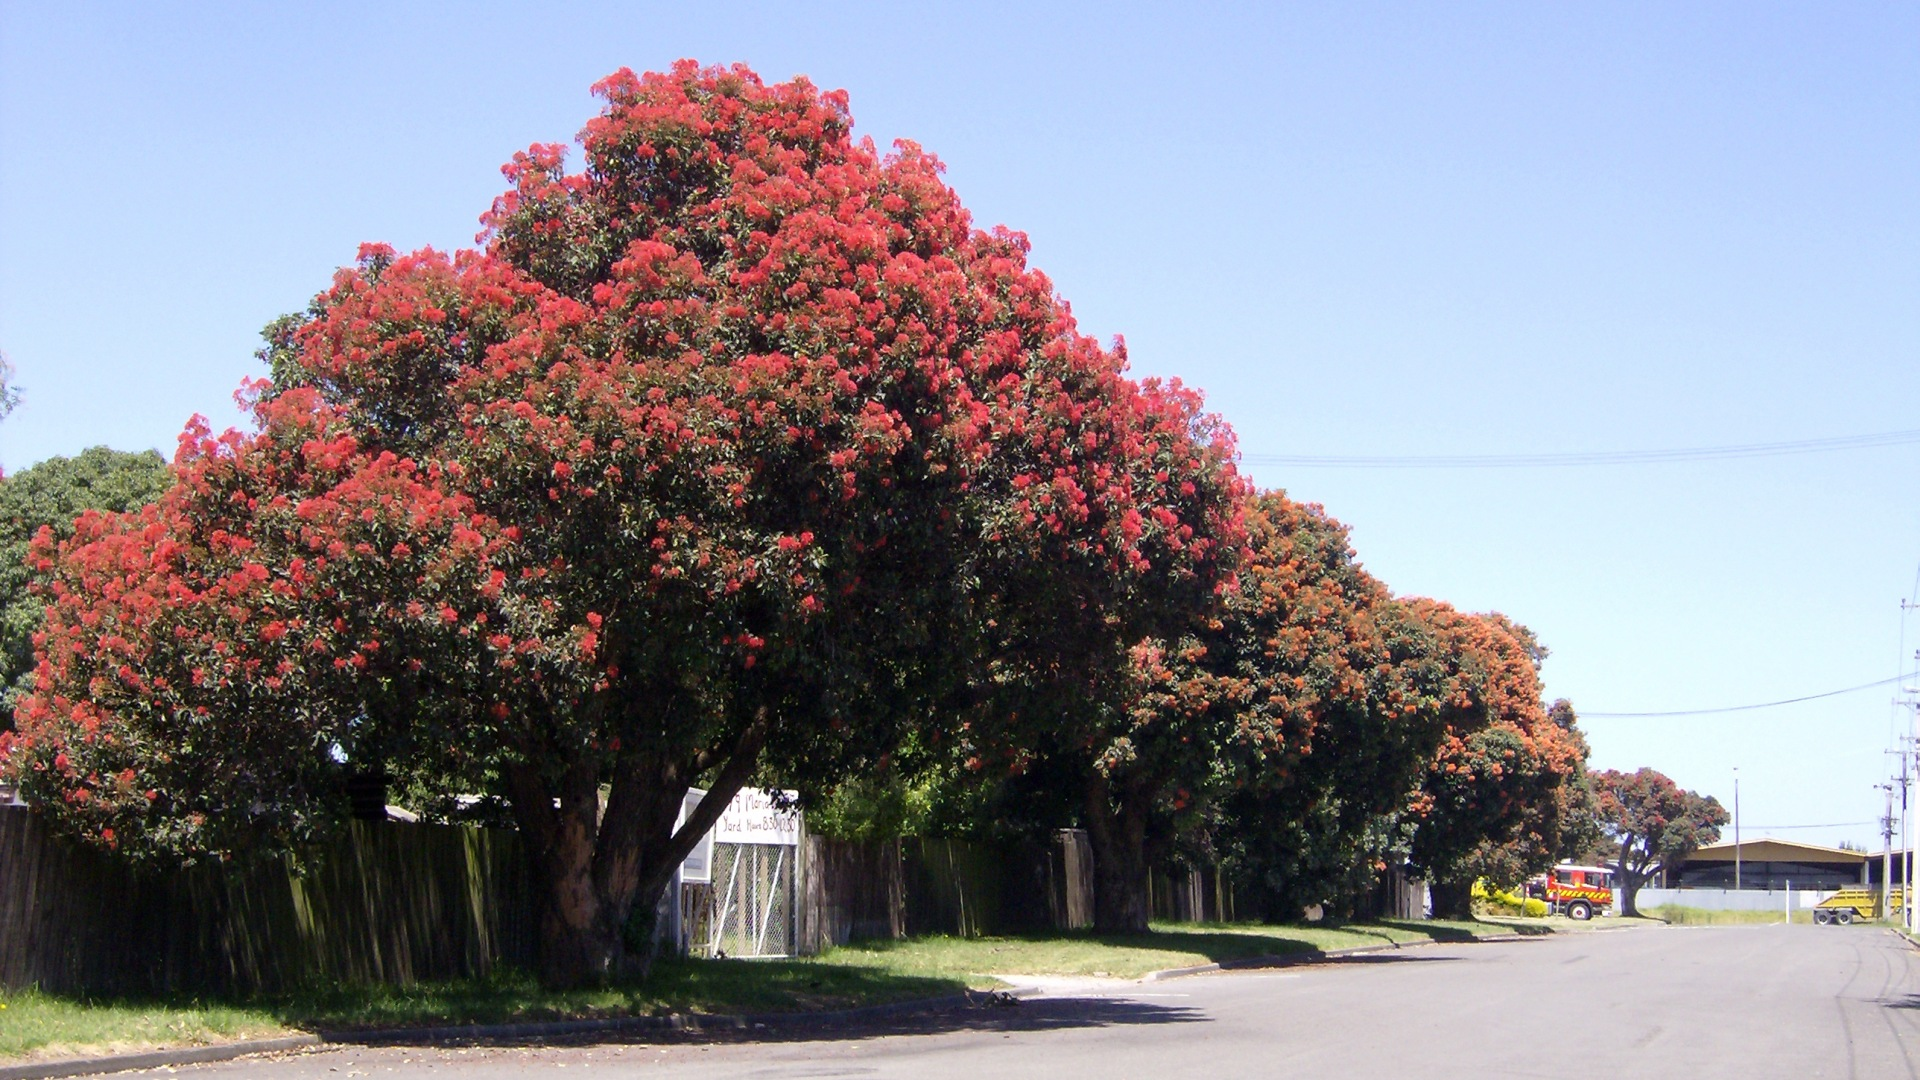 the pohutukawa tree Pohutukawa tree stock photos and illustrations search and download from millions of high resolution stock photos, royalty free images, clipart, and illustrations.